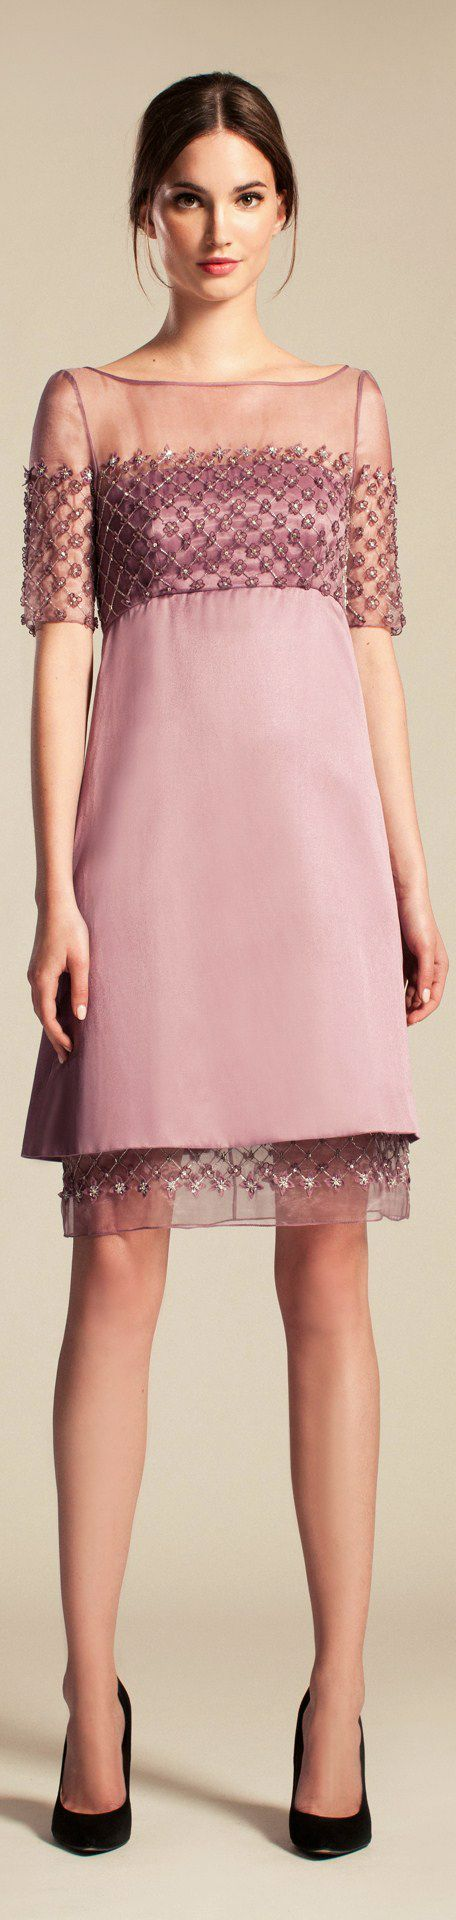 Temperley London, Cruise '14, Forget Me Not Dress